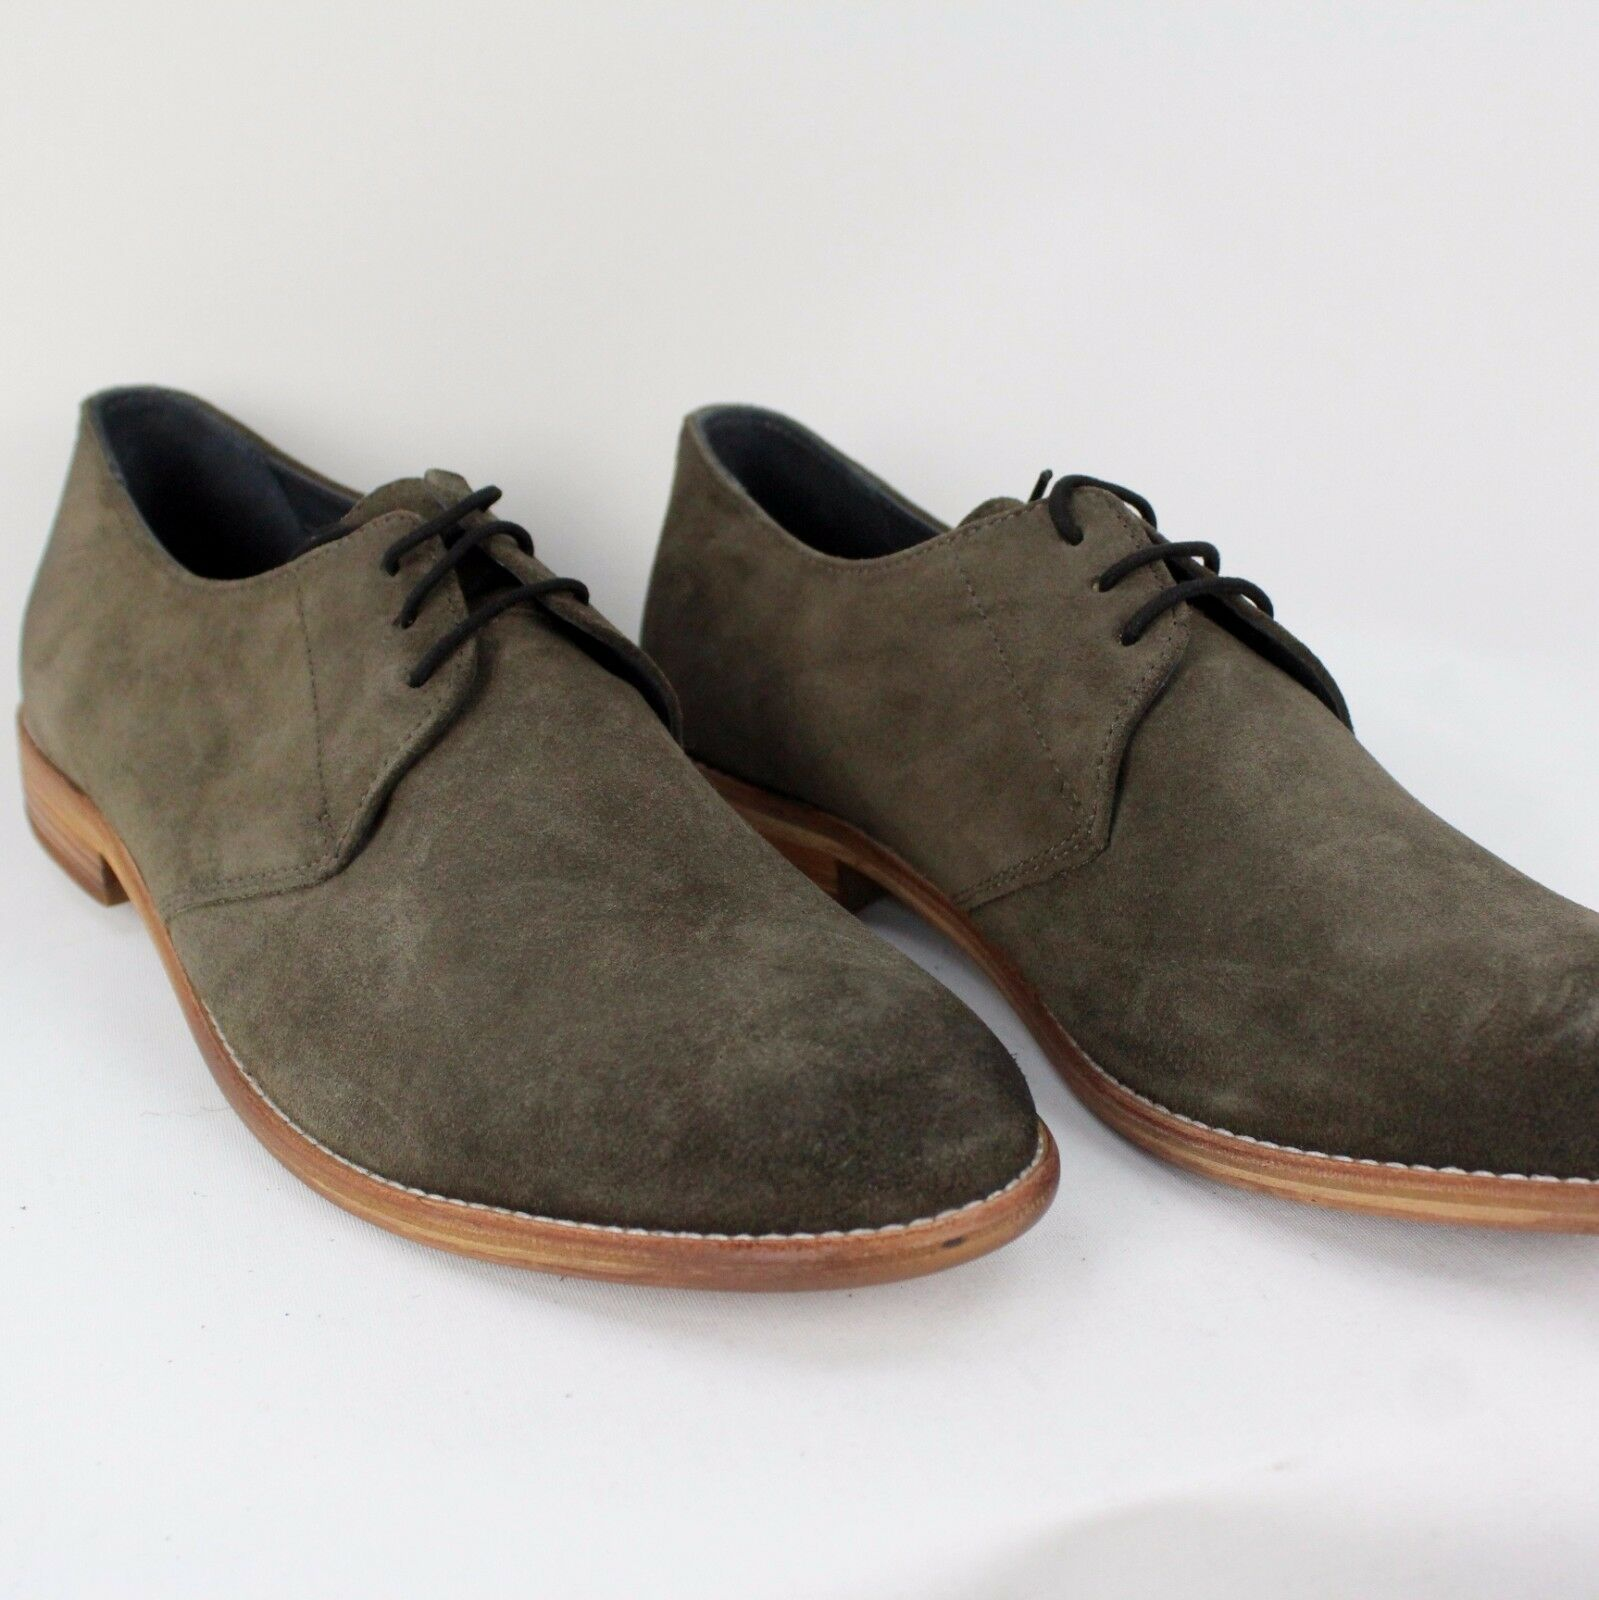 Frank Wright taille 44 Affaires Chaussure Lacée Daim Hommes Chaussures Marron a5269